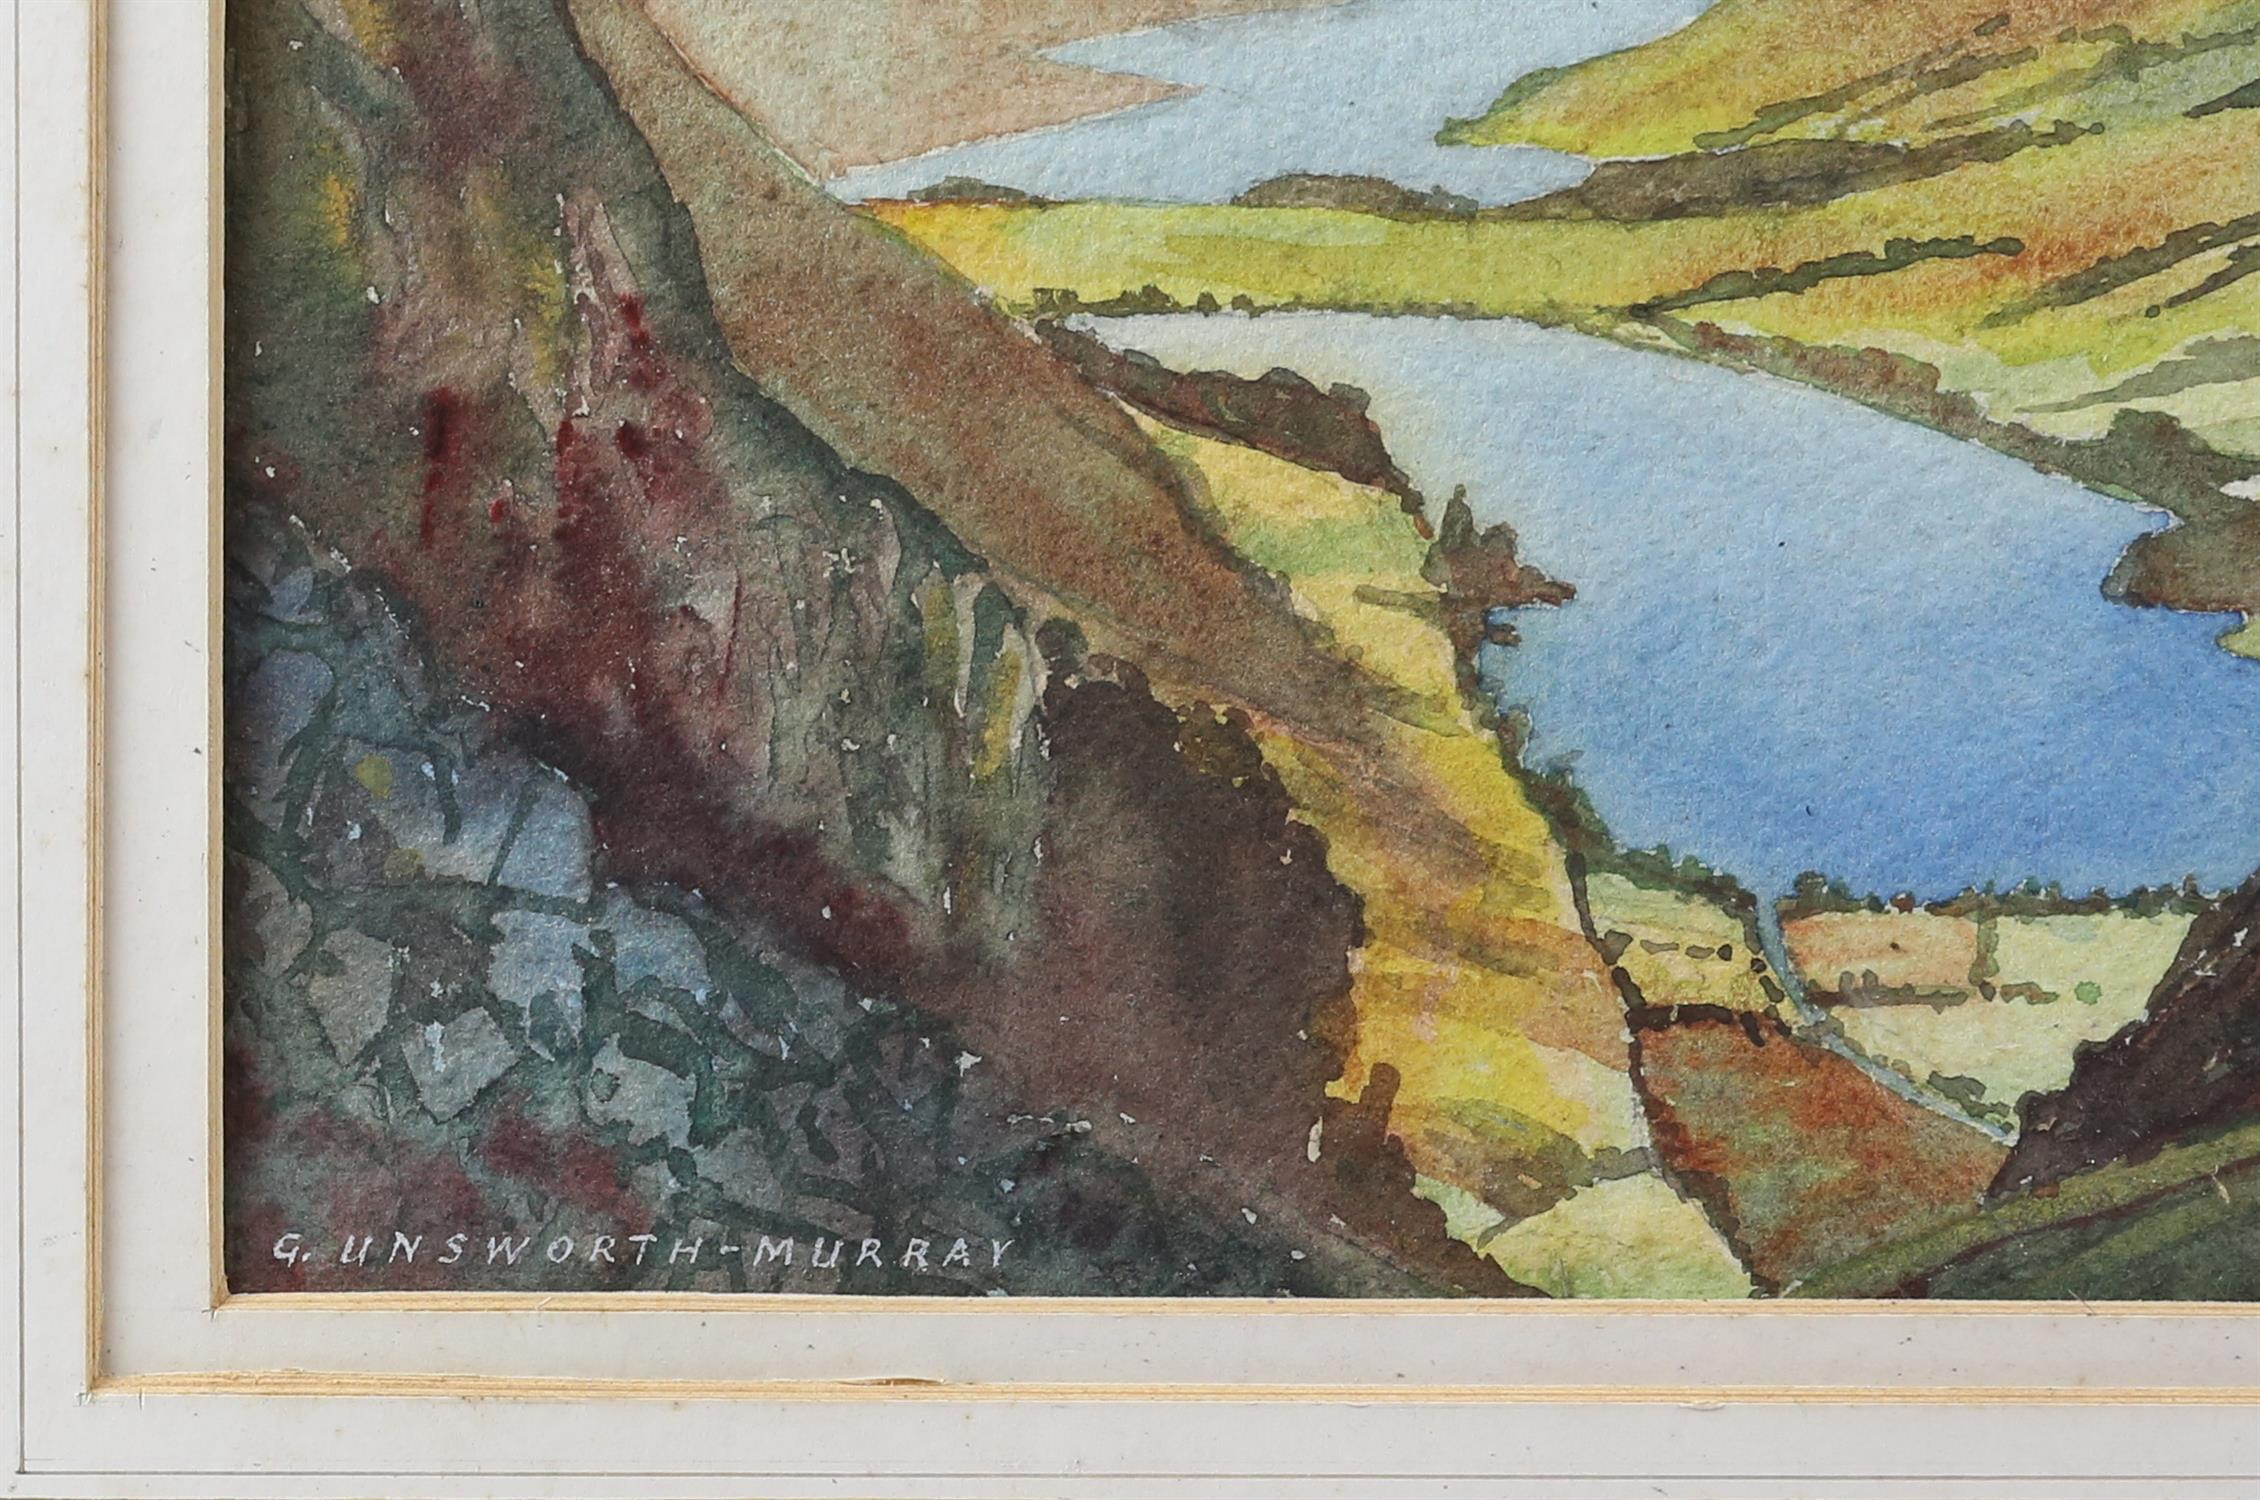 G Unsworth-Murray, British 20th century, 'Buttermere and Crummock Water', signed, watercolour, 26. - Image 3 of 3